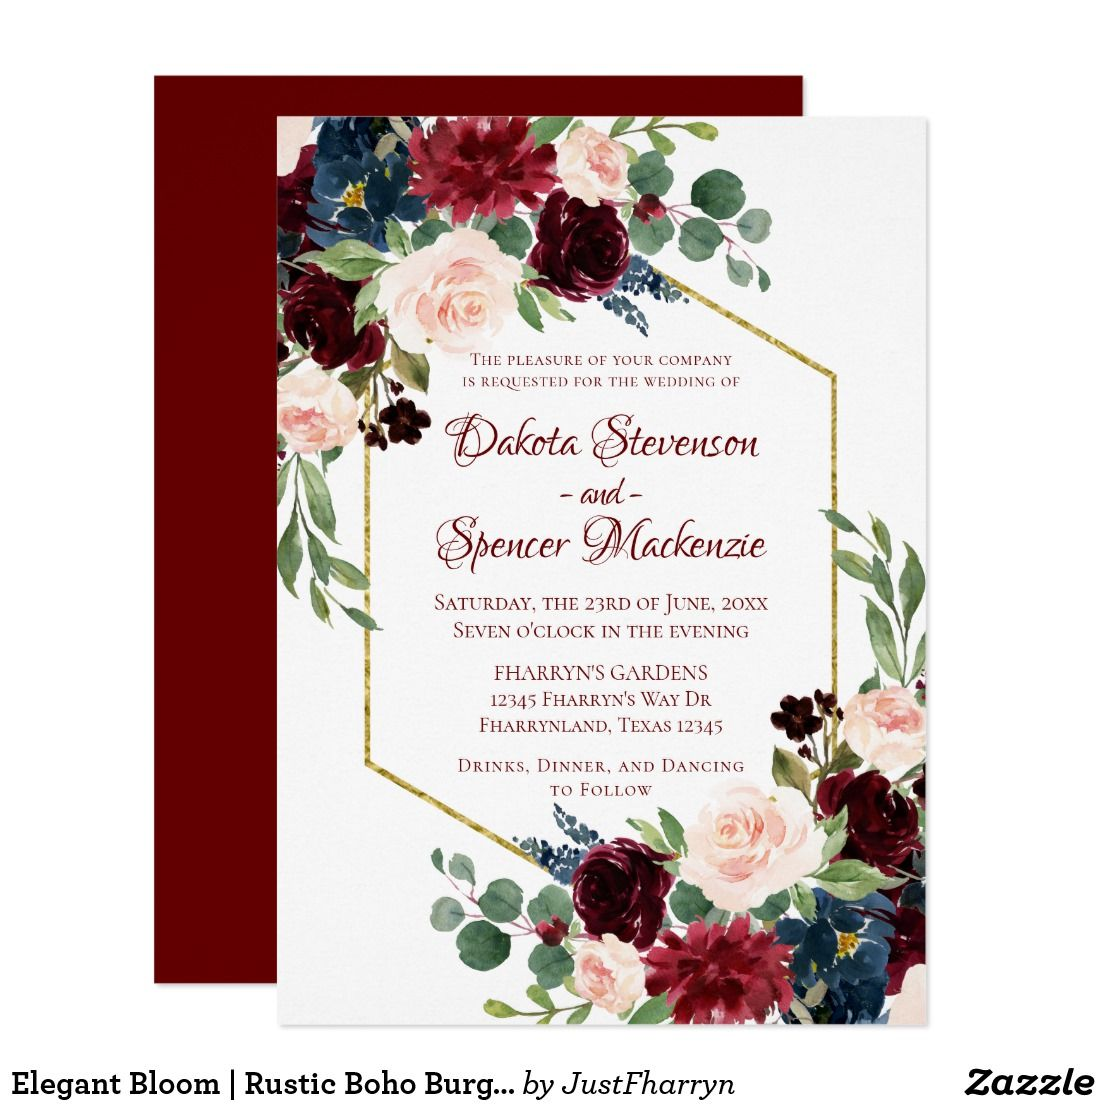 Elegant Bloom | Rustic Boho Burgundy Wedding Card | Burgundy wedding ...